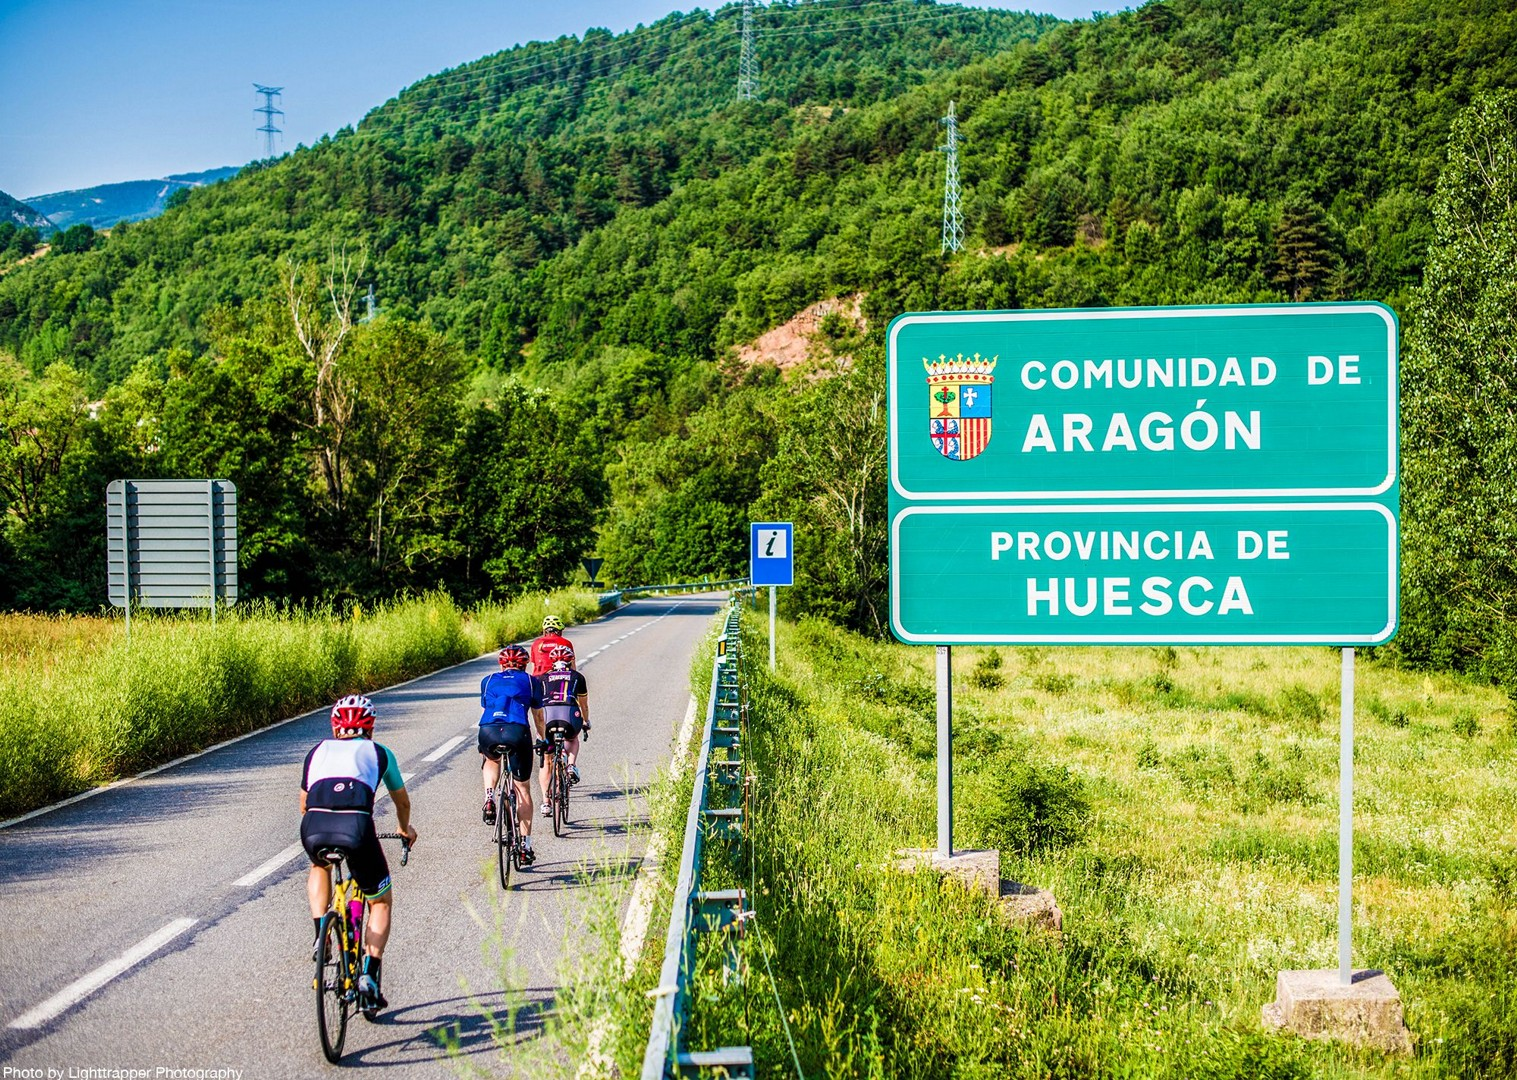 aragon-northern-spain-road-cycling-spanish-pyrenees-coast-to-coast-holiday.jpg - NEW! Spain - Spanish Pyrenees Coast to Coast - Road Cycling